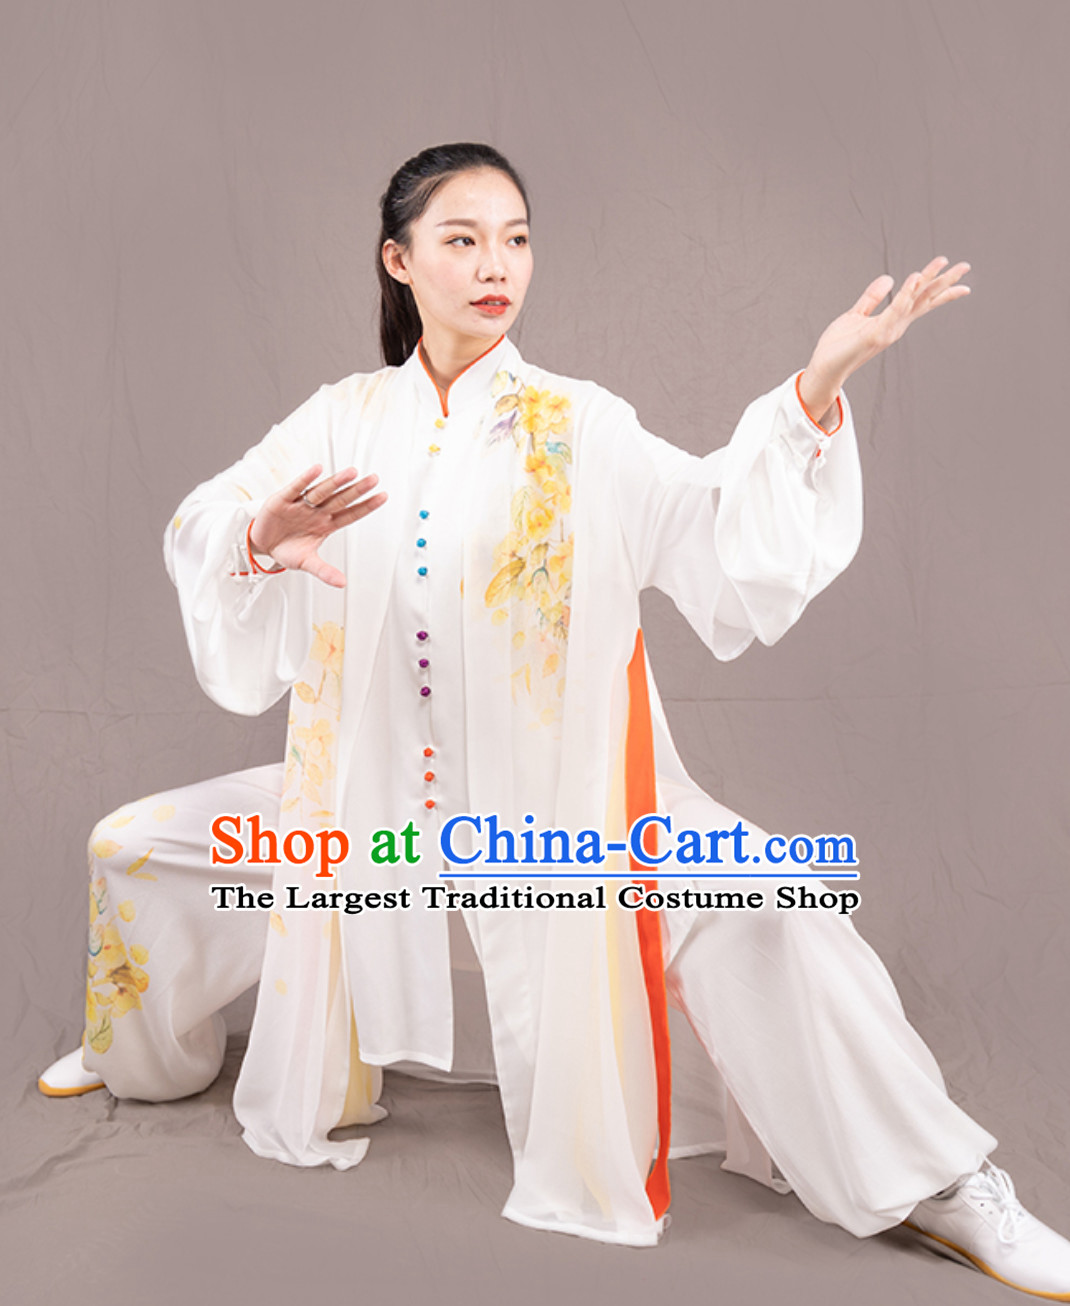 Top Chinese Traditional Competition Championship Professional Tai Chi Uniforms Taiji Kung Fu Wing Chun Kungfu Tai Ji Sword Gong Fu Master Stage Performance Suits Clothes Complete Set